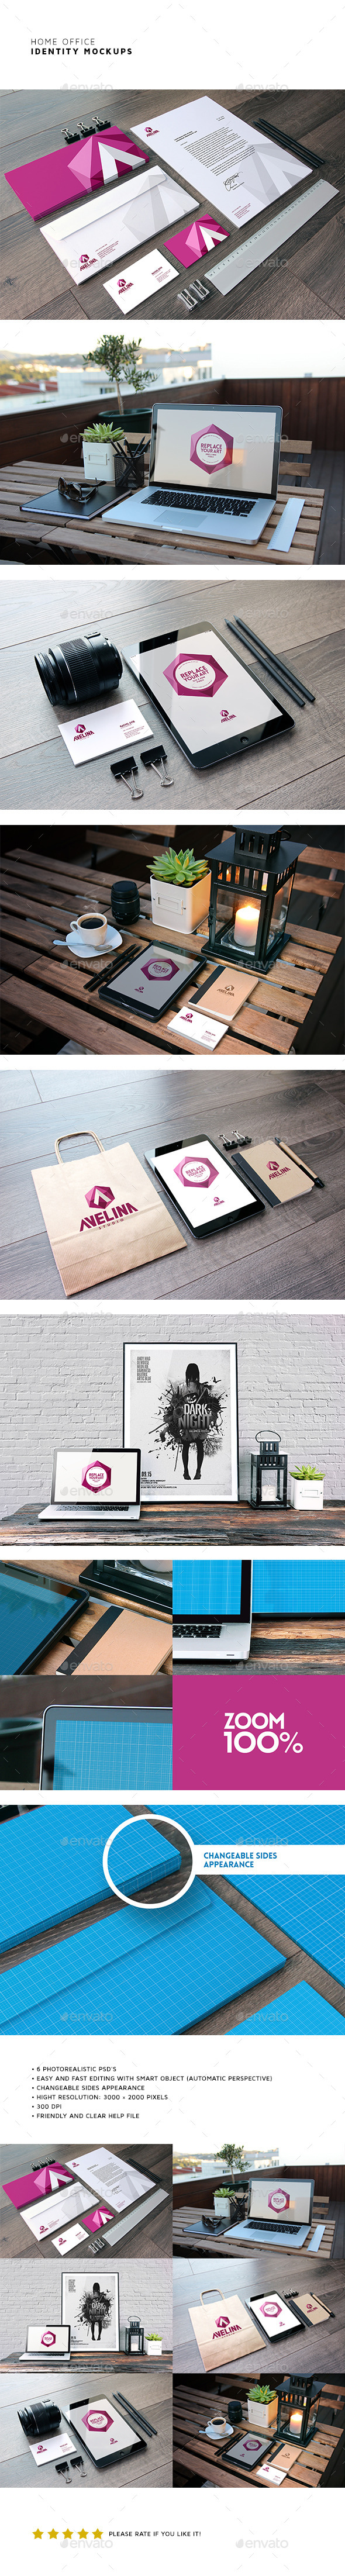 mockup ,iphone , mock ,up ,free ,free mockup ,design ,download ,ipad ,logo ,icon ,freebie  ,